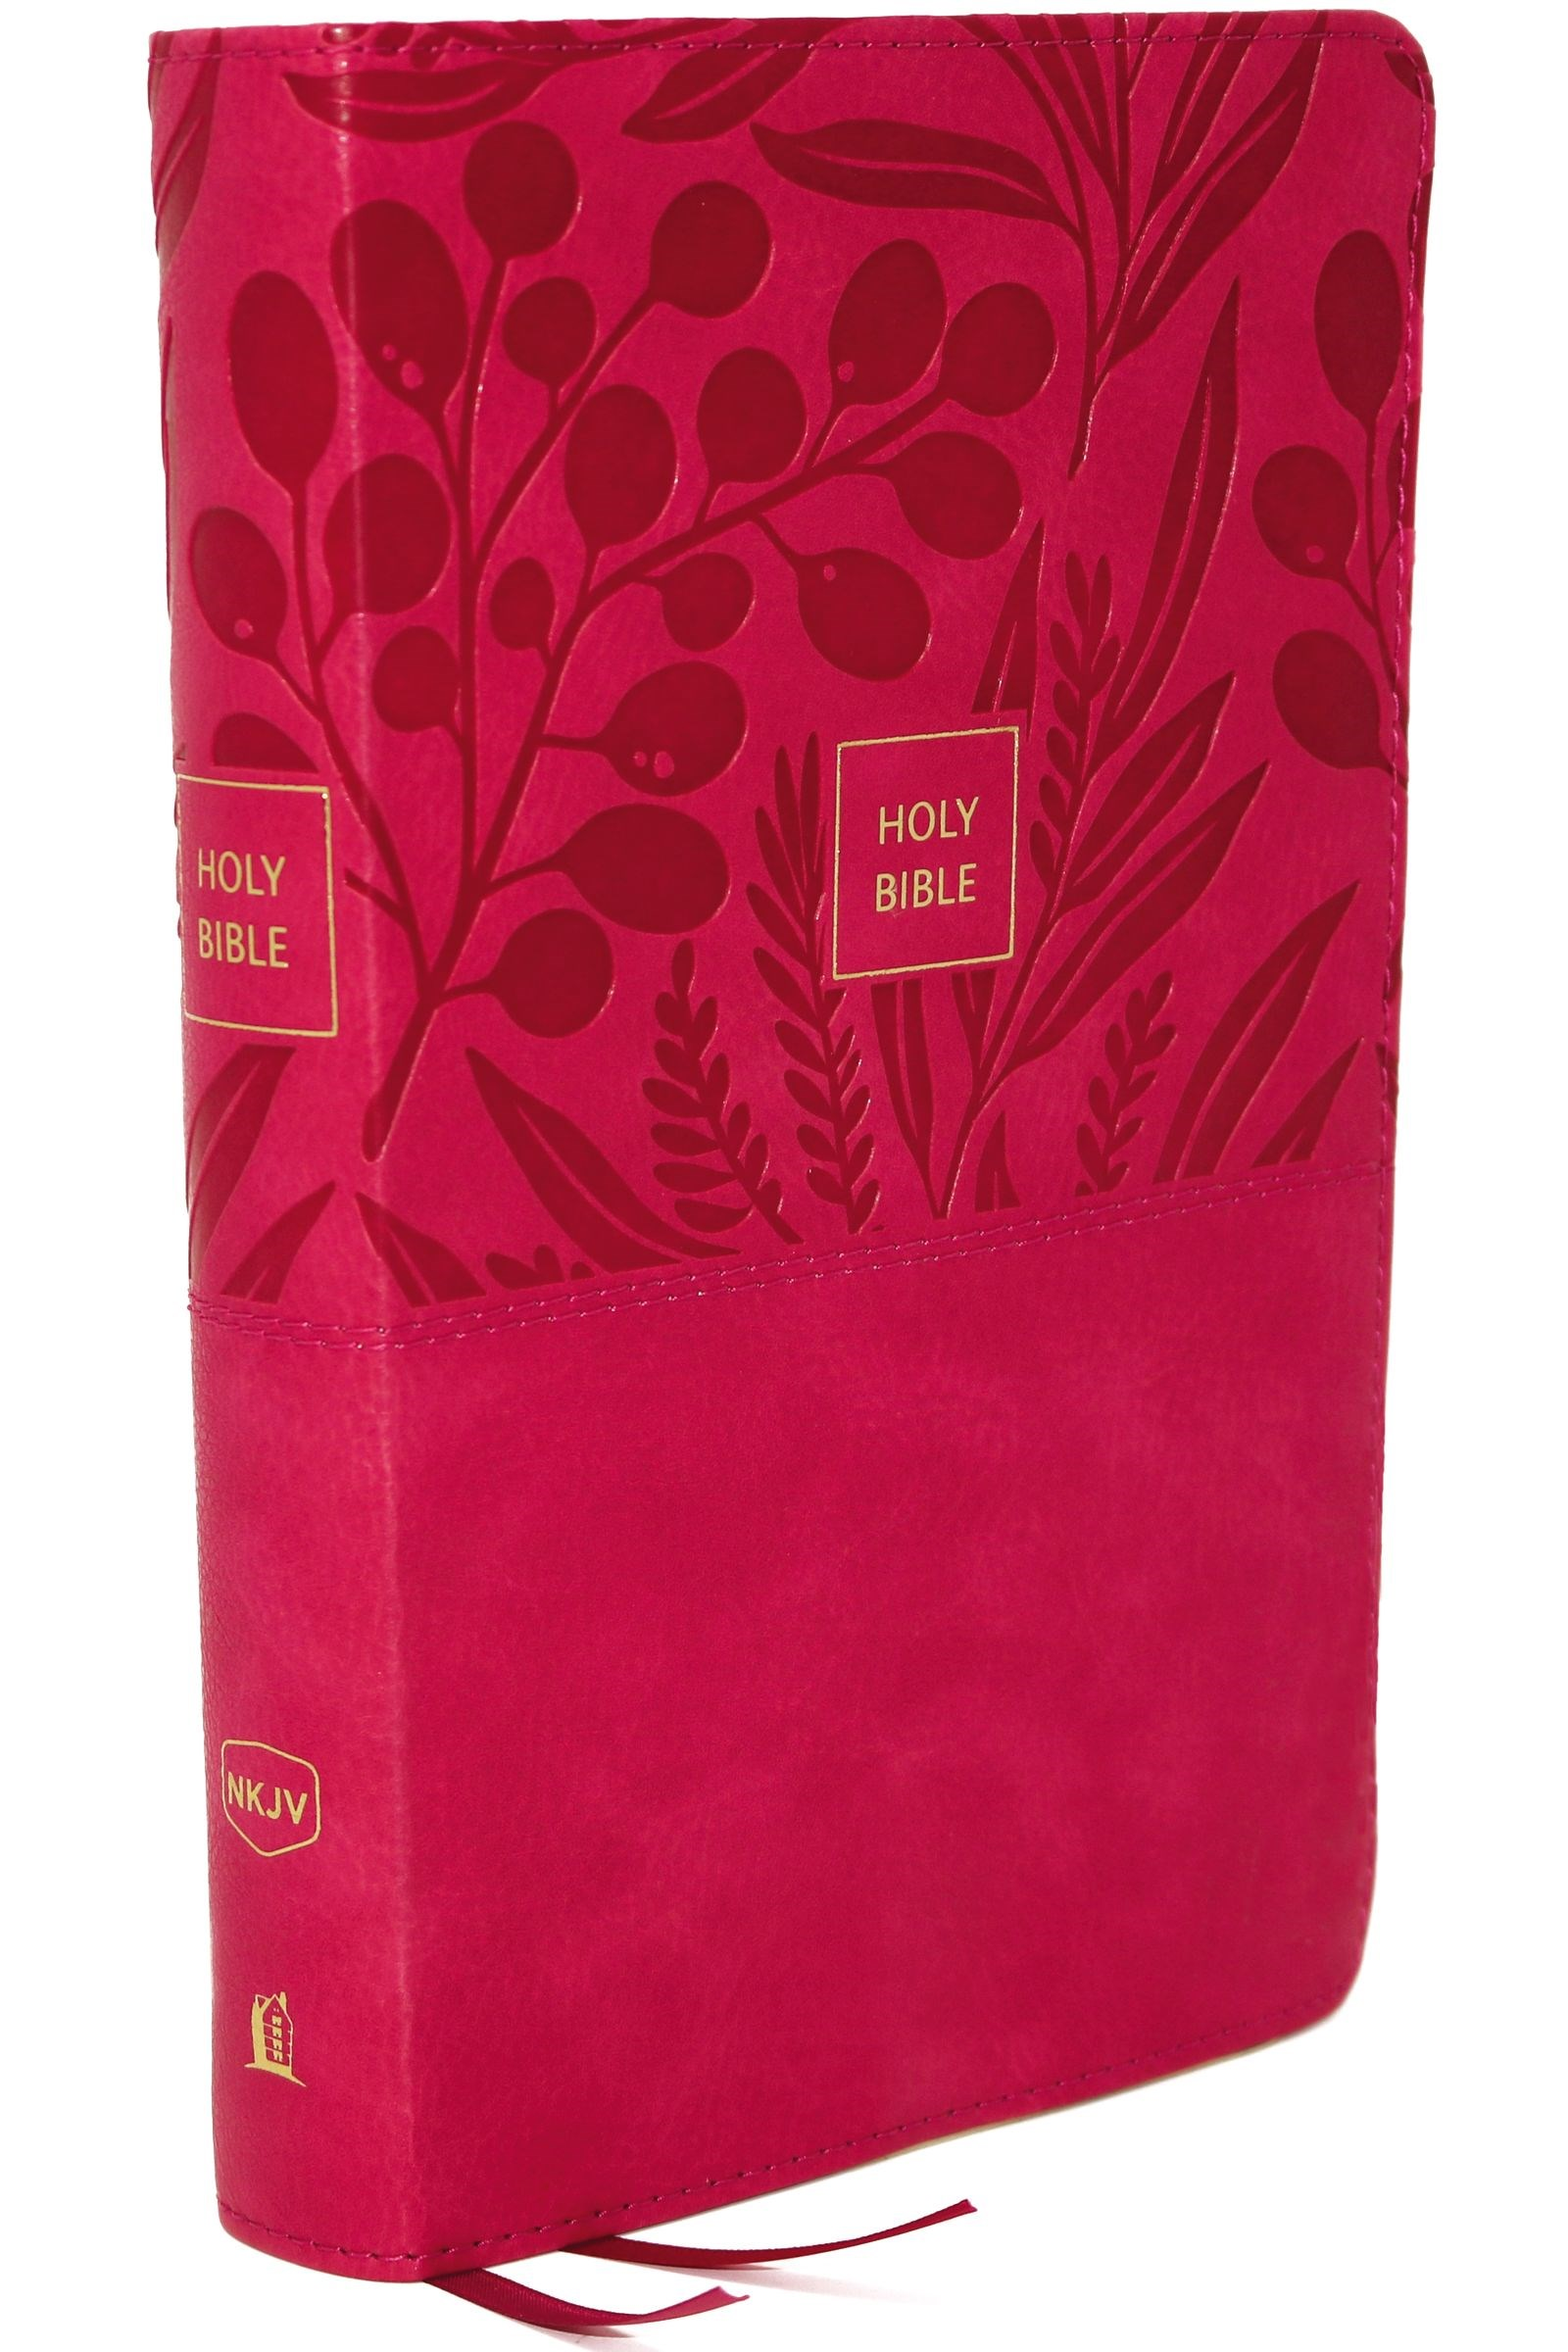 NKJV Compact Large Print Reference Bible (Comfort Print)-Pink Leathersoft